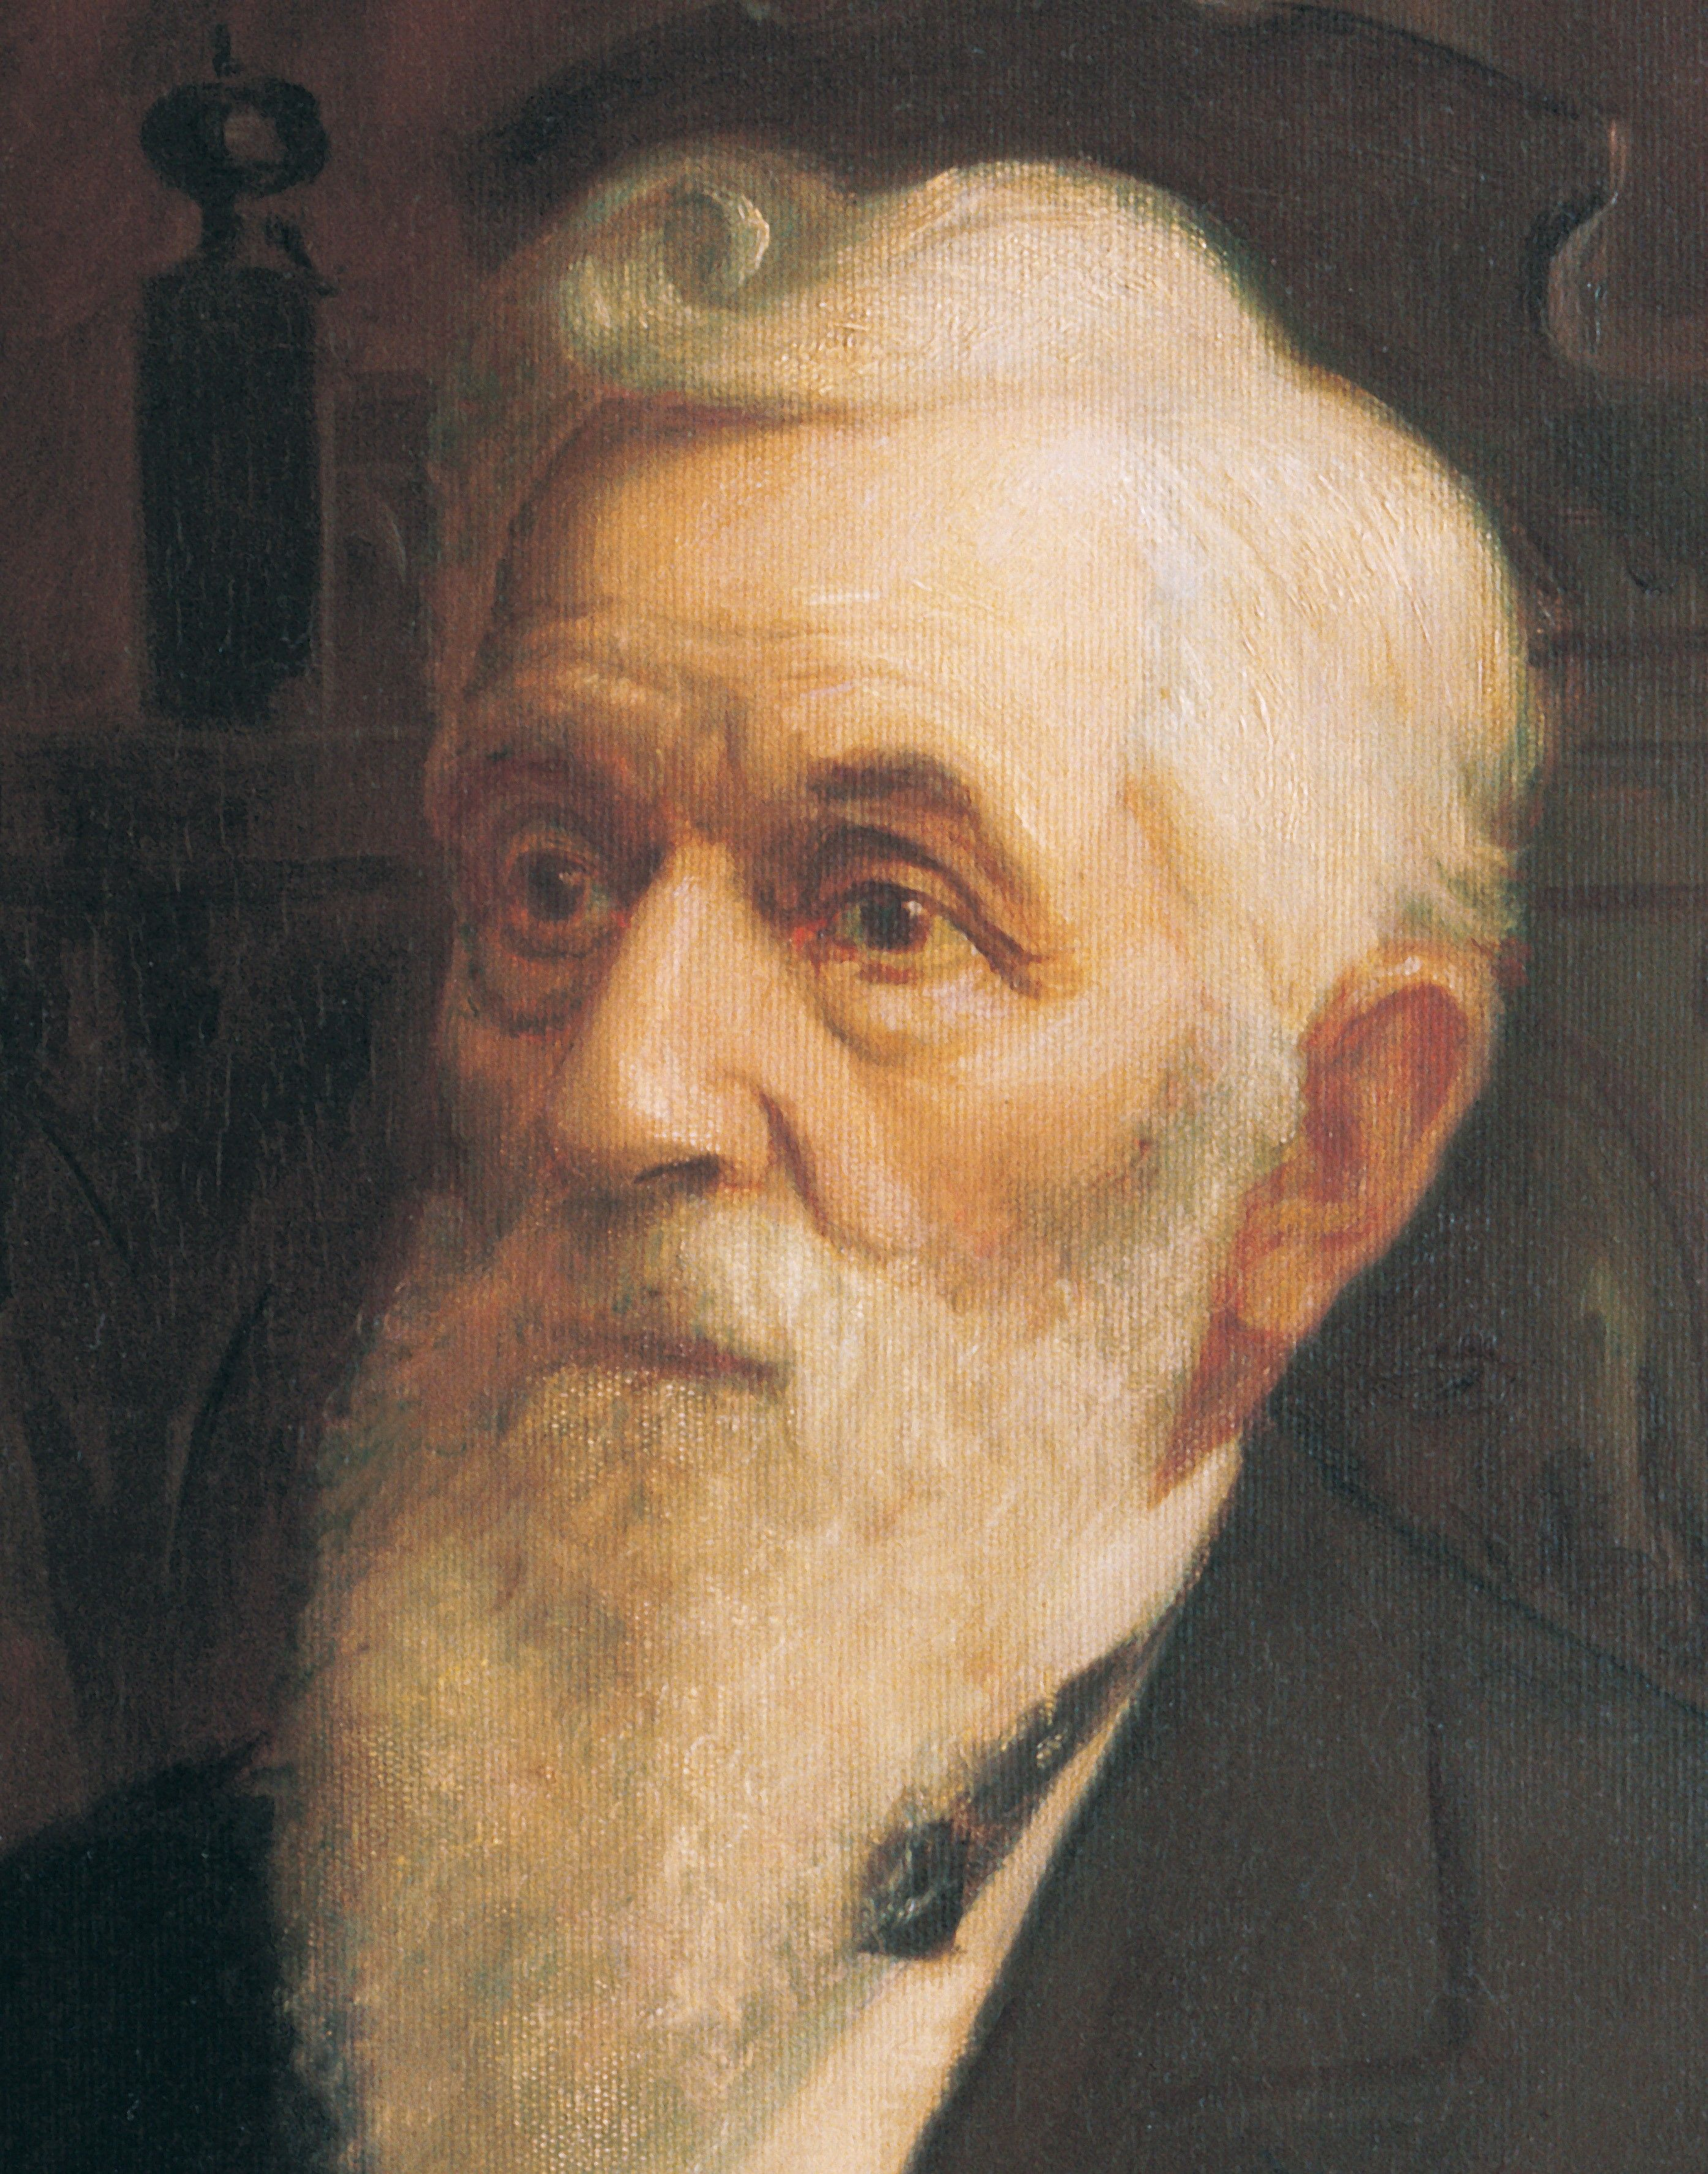 Lorenzo Snow, by Lewis A. Ramsey; GAK 510; GAB 126; Primary manual 3–18; Our Heritage, 103–4. President Lorenzo Snow served as the fifth President of the Church from 1898 to 1901.